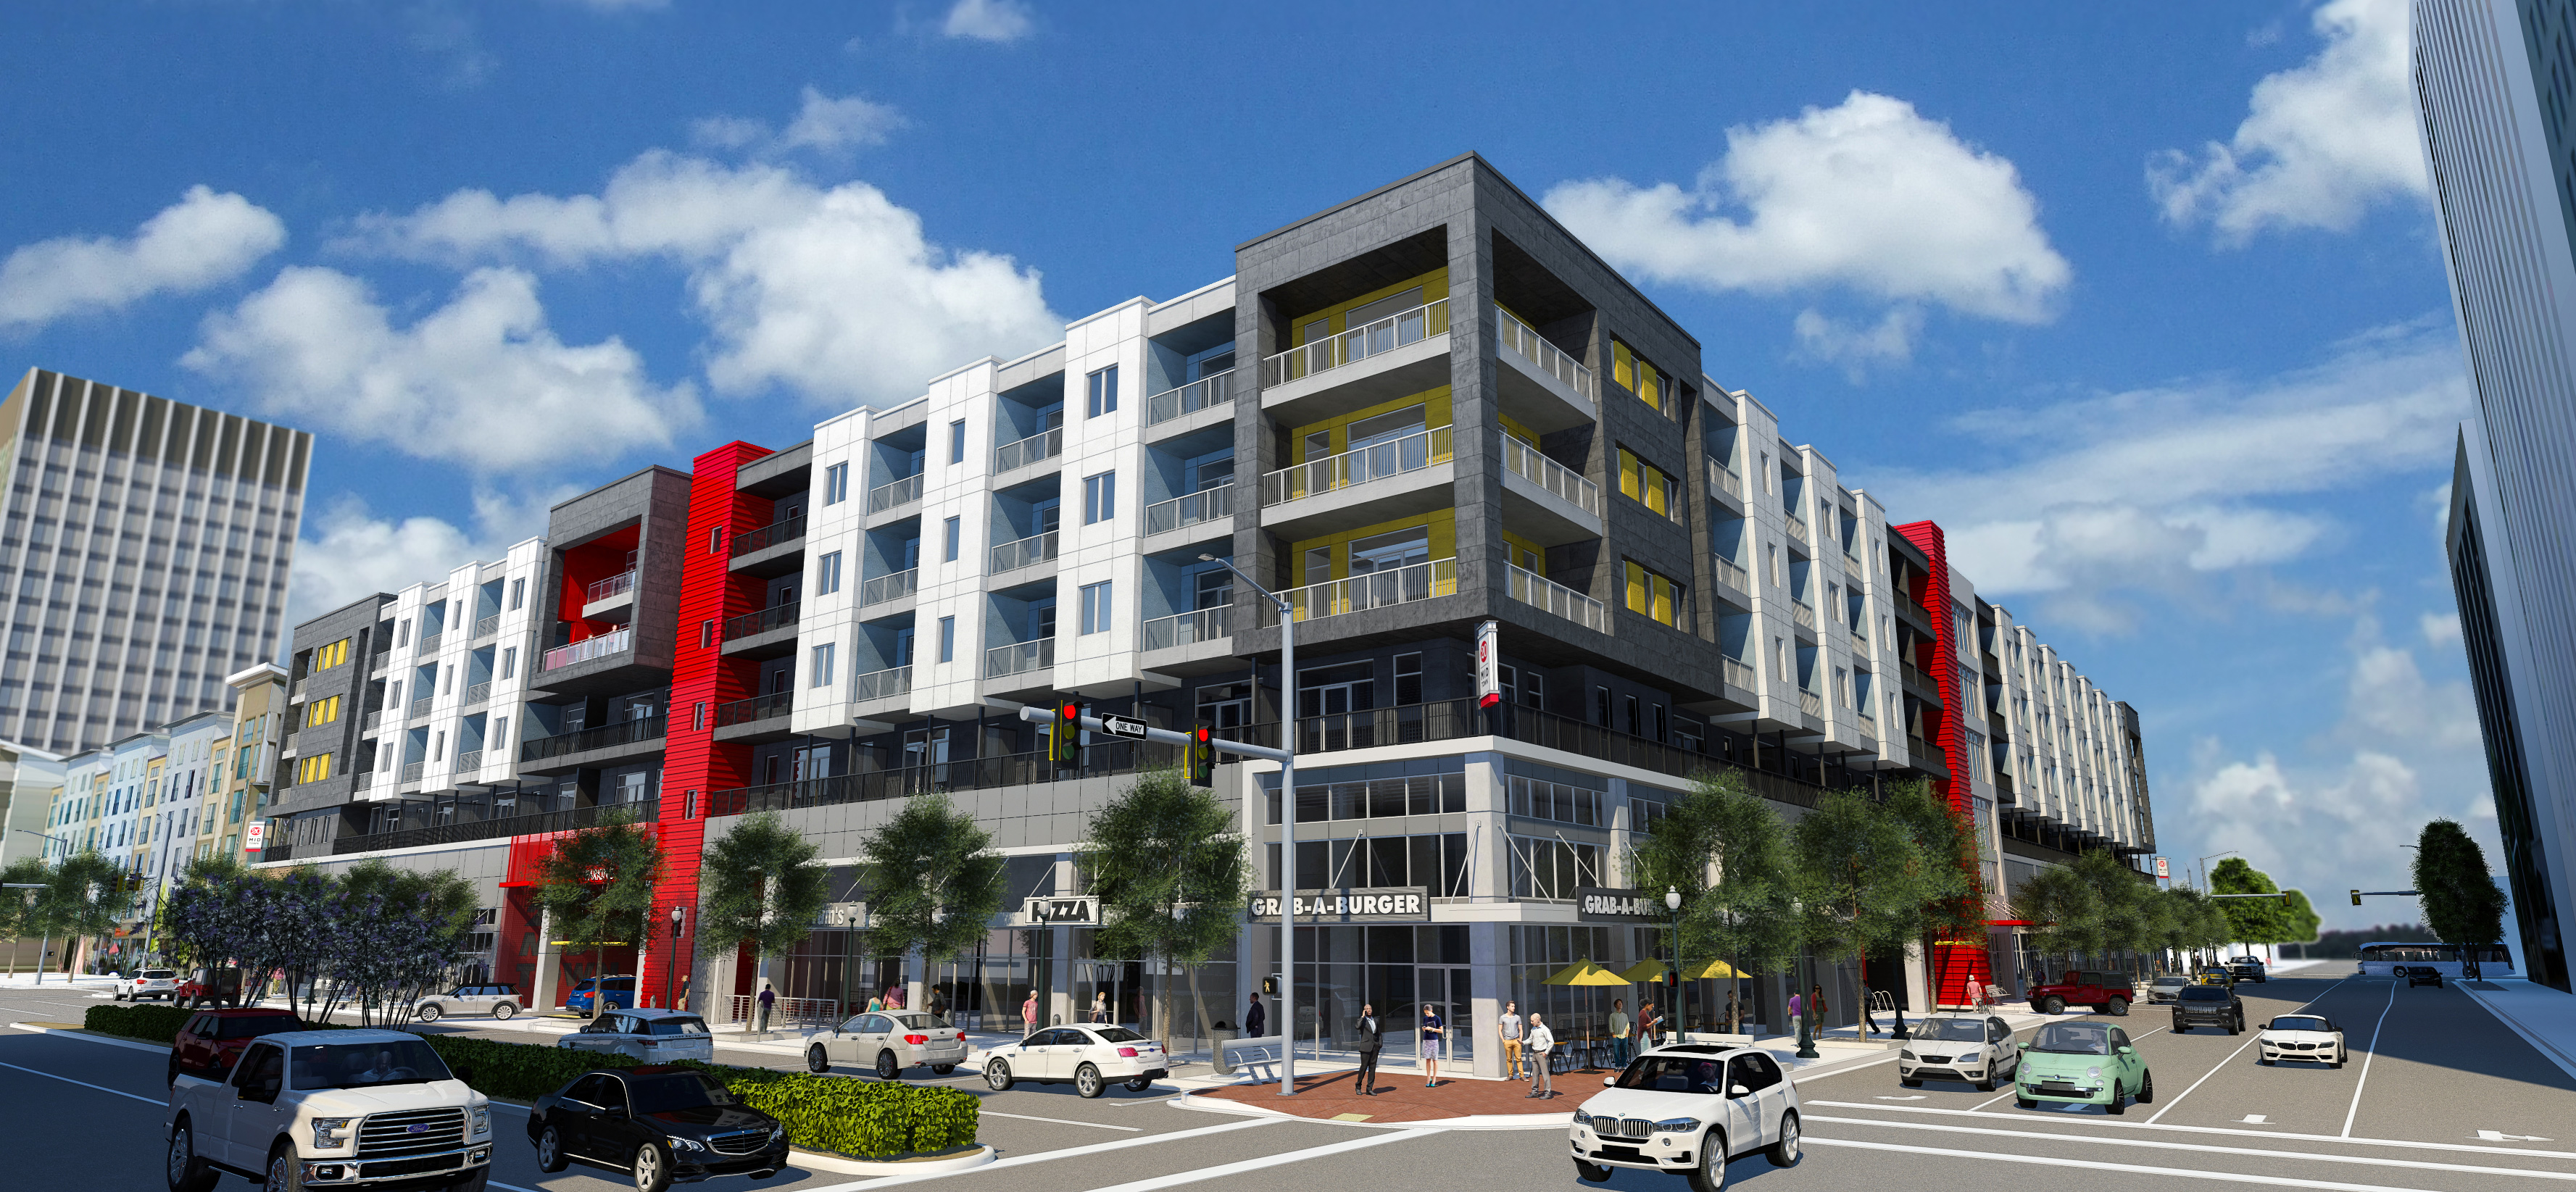 Third building for 20 Midtown moving forward as developers recapitalize, secure financing